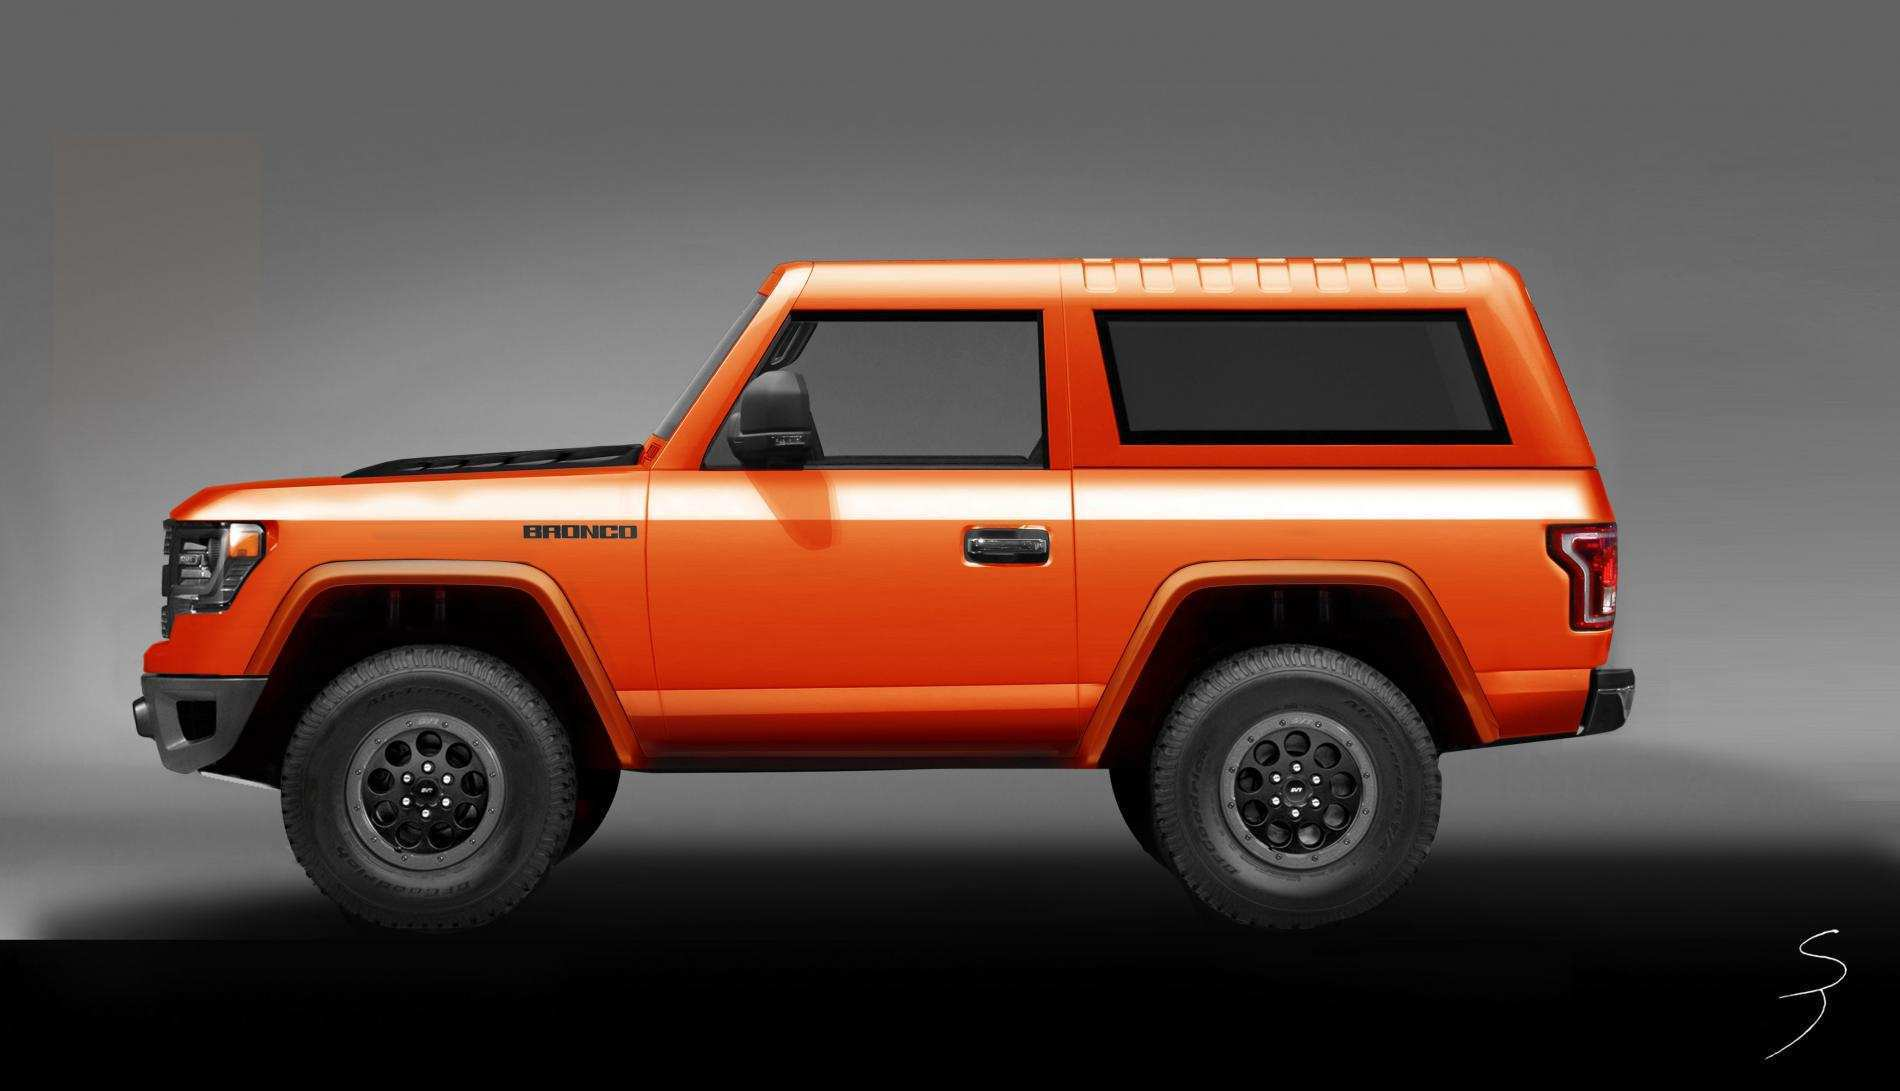 22 Best 2020 Ford Bronco Design Concept And Review